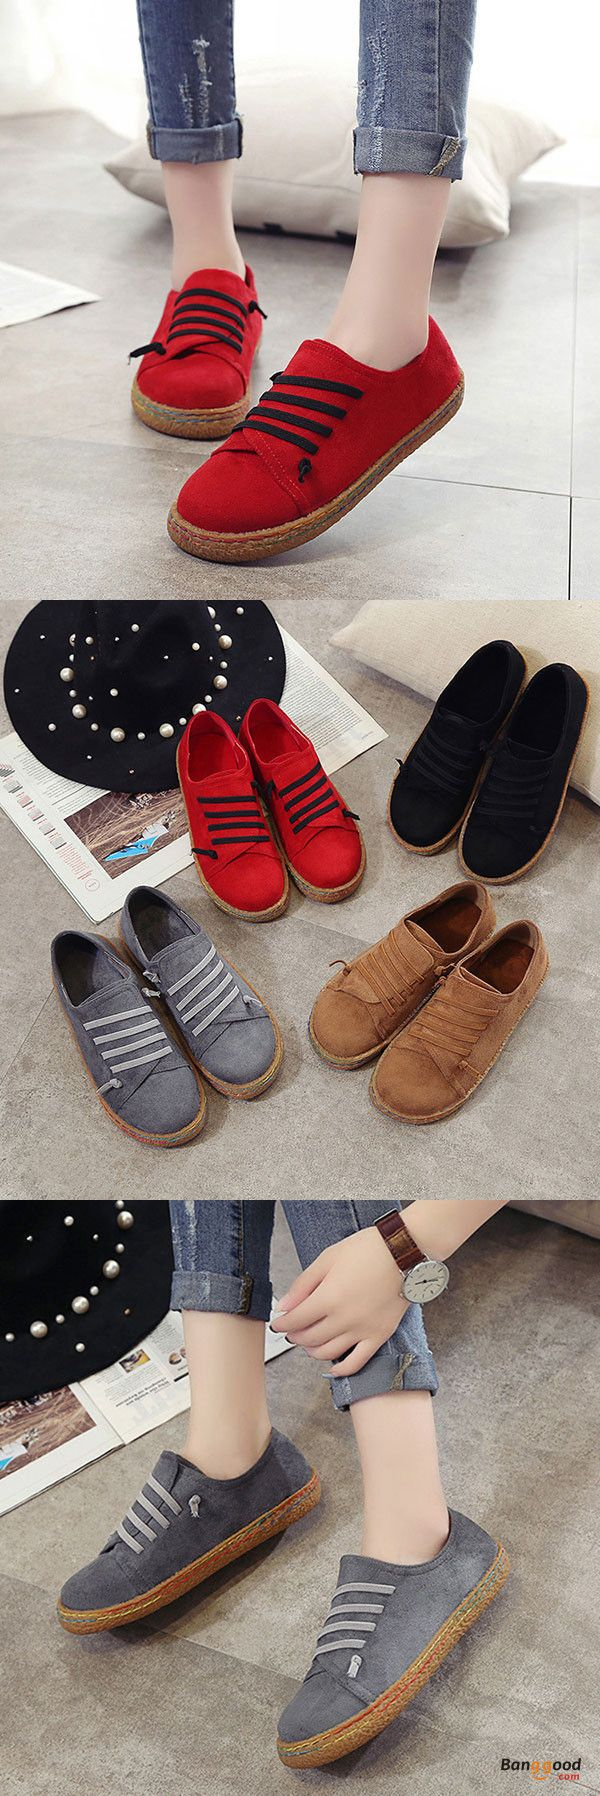 US$19.99+Free shipping. Size(US): 5~11. Upper Material: Suede. Fall in love with casual style! Summer Sandals, Women Flat Sandals, shoes flats, shoes sandals, Casual, Outdoor, Comfortable.